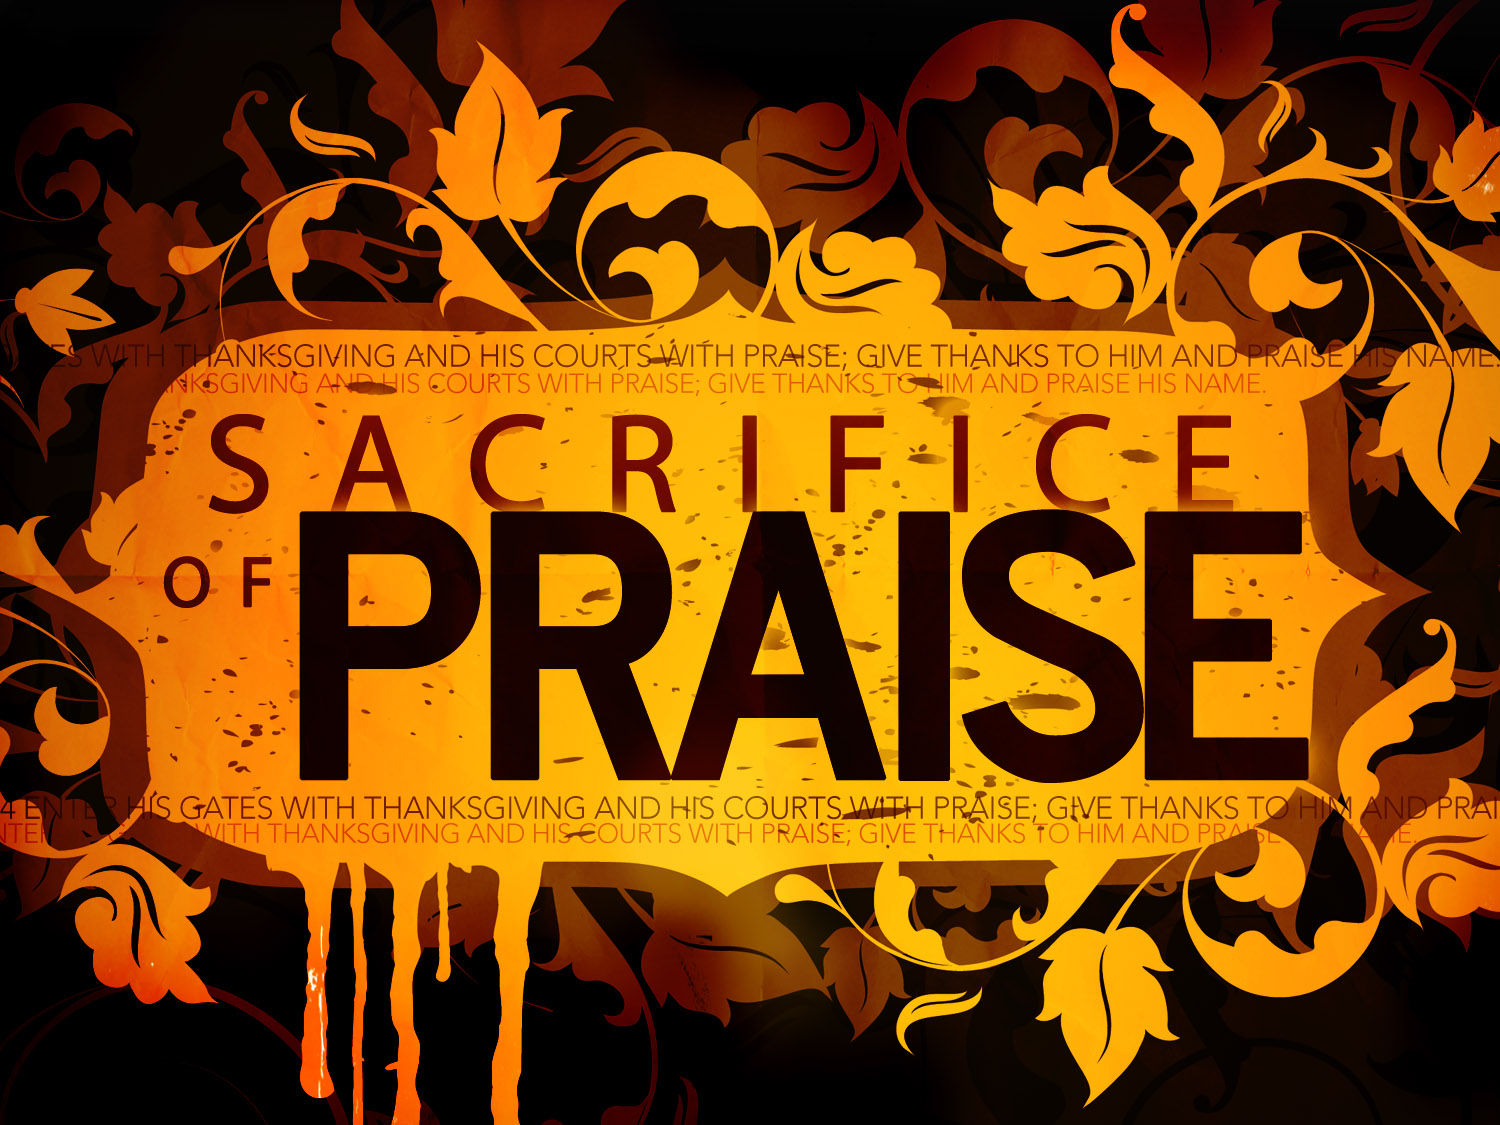 By Their Strange Fruit: We Bring the Sacrifice of Praise